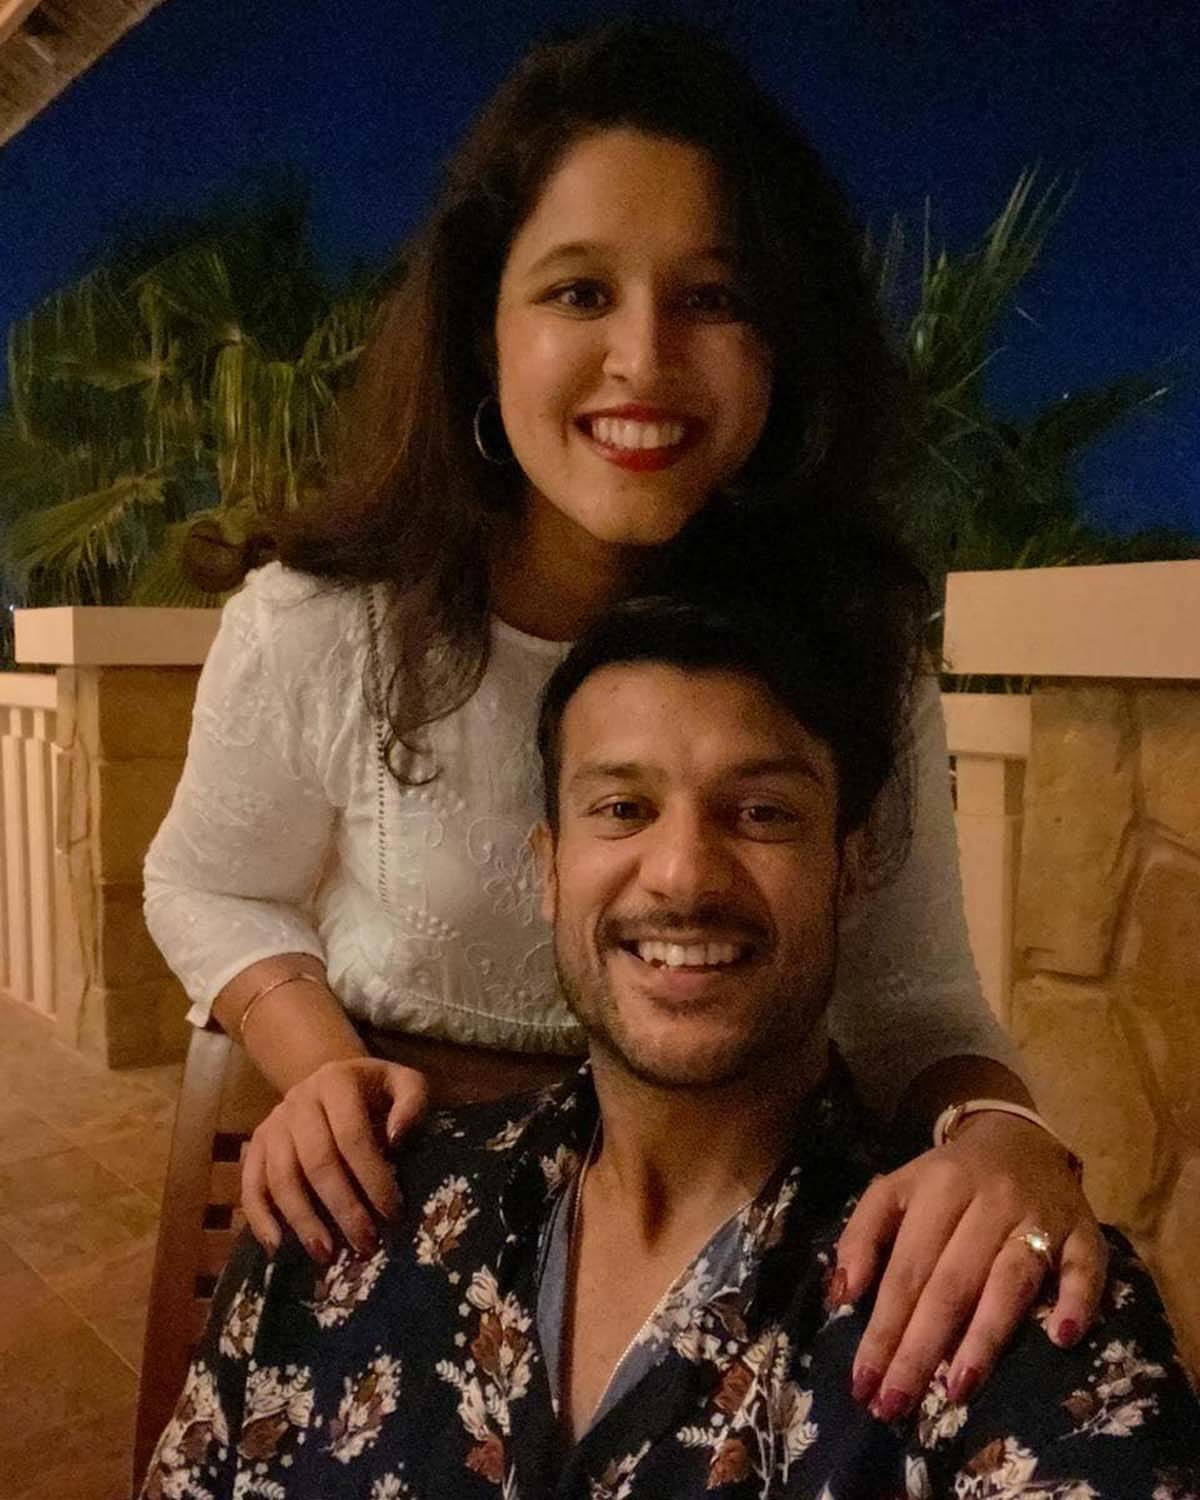 Cricketer Mayank Agarwal and wife Aashita Sood  share new pictures from Dubai